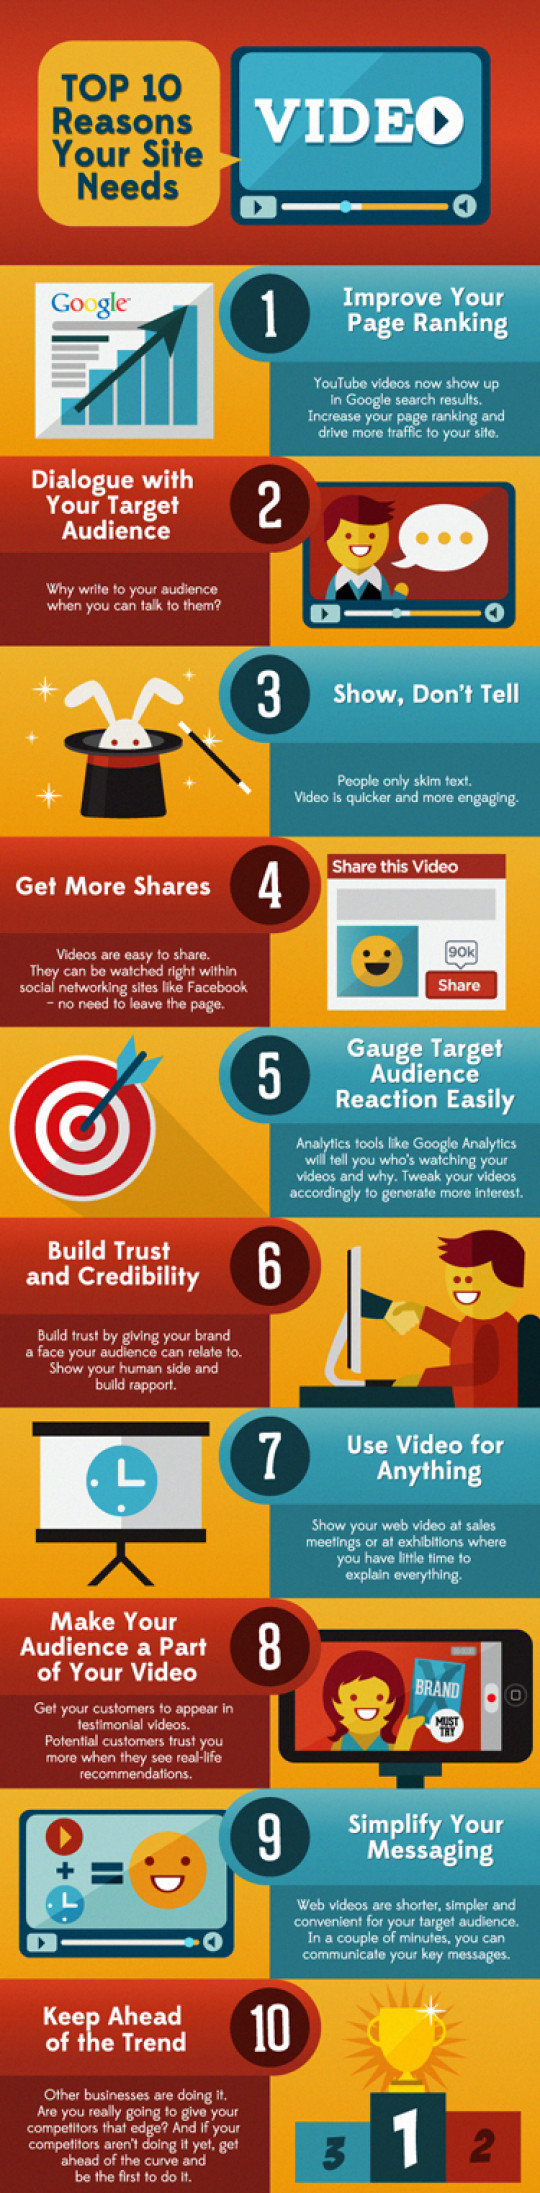 Top 10 Reasons Your Site Needs Video